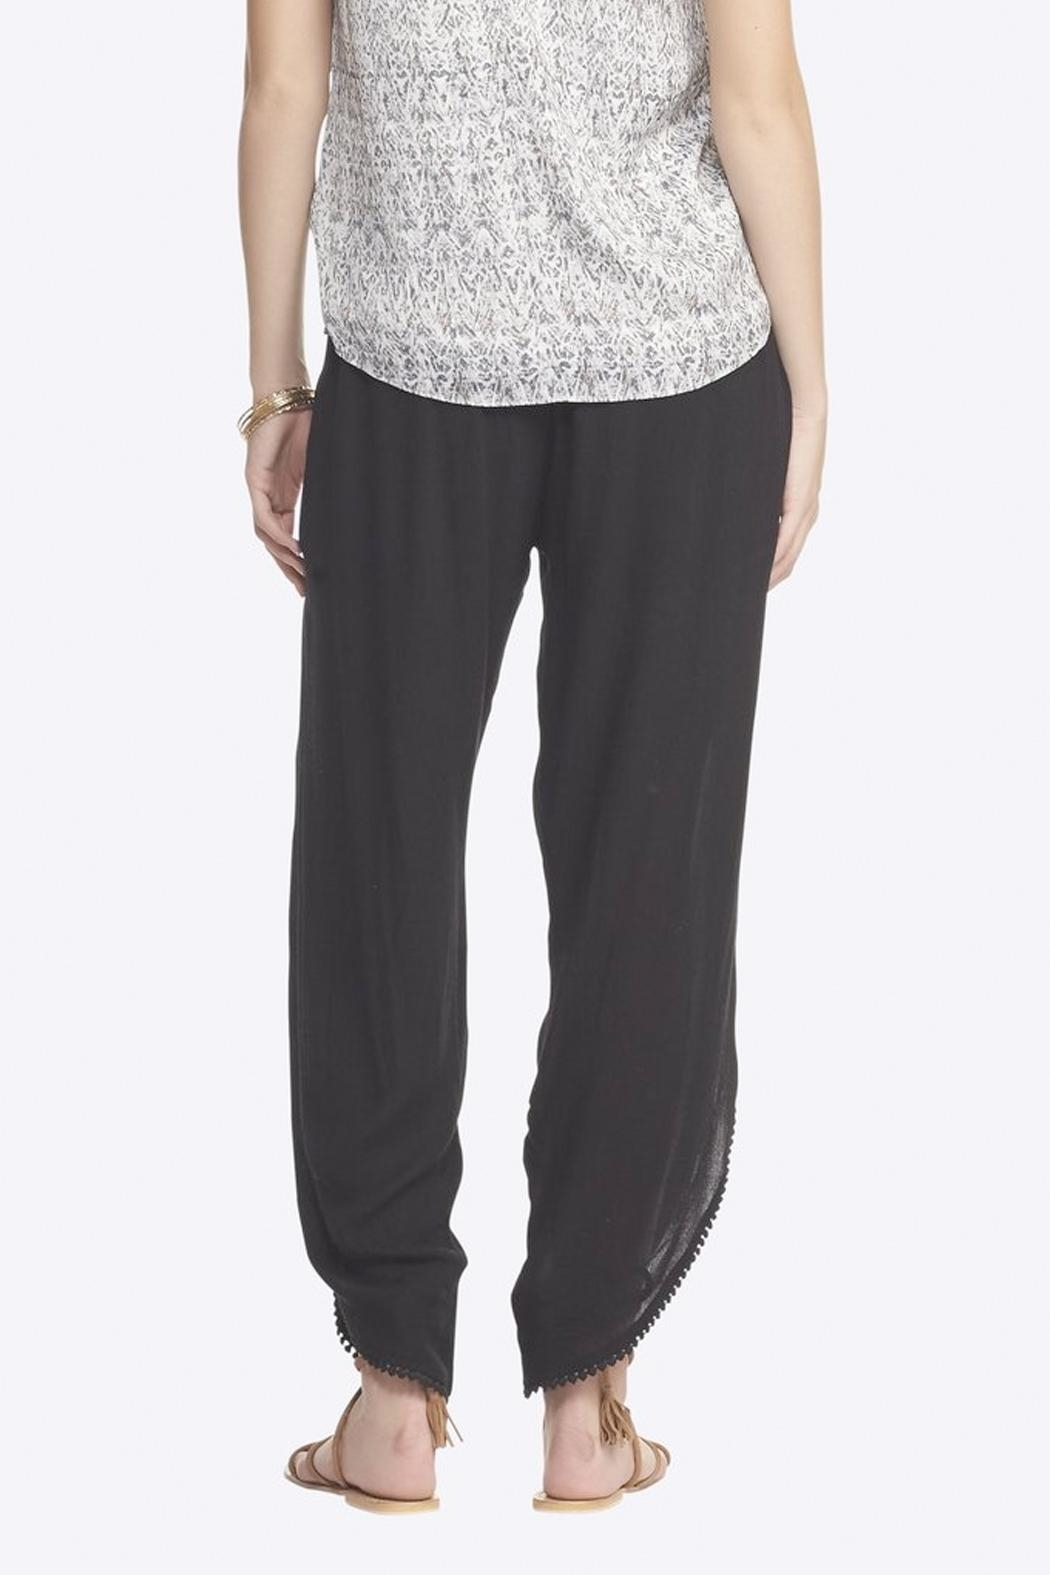 Tart Collections Marley Boho Pant - Side Cropped Image